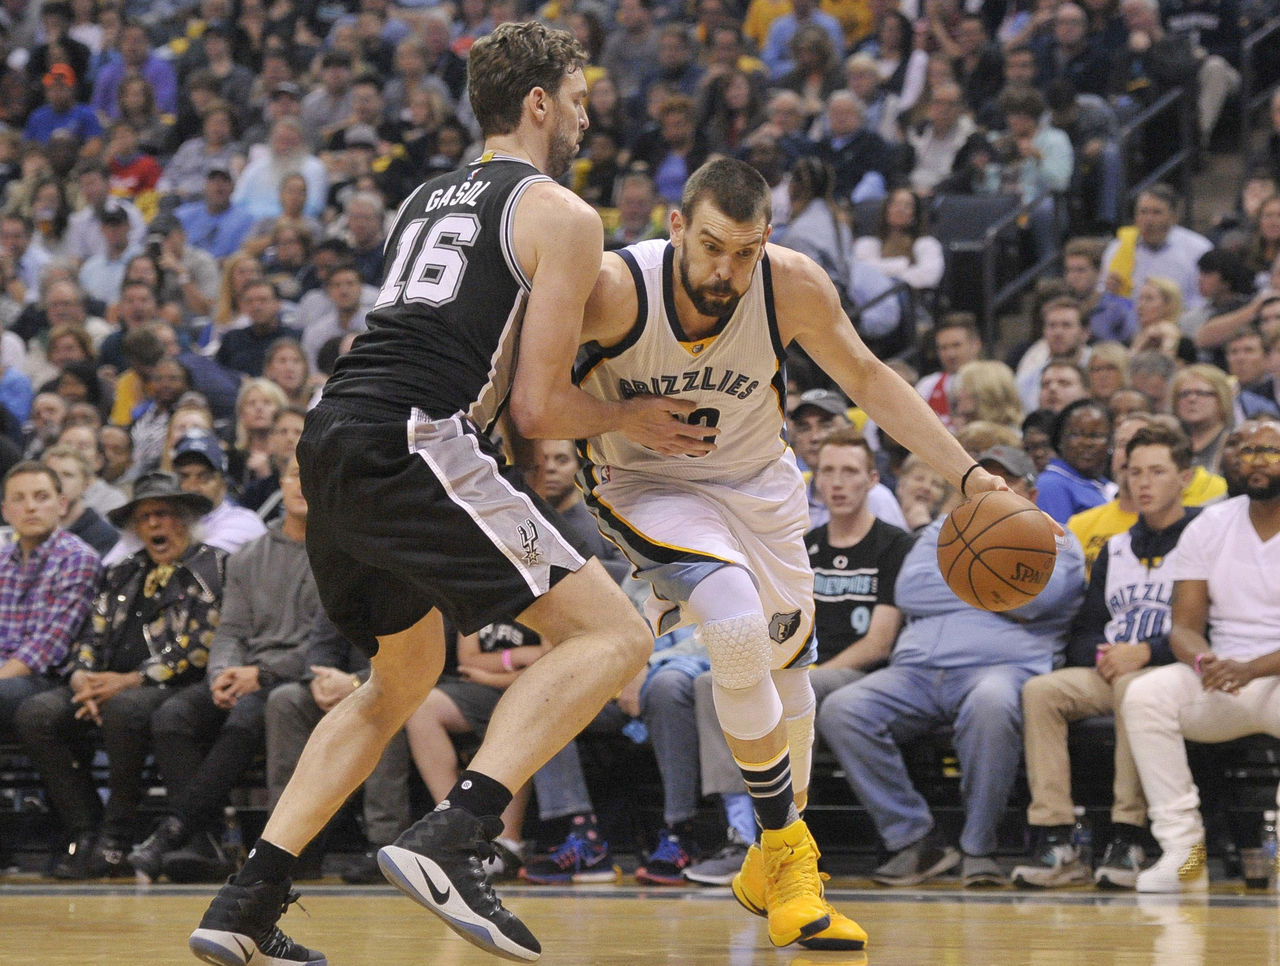 Cropped_2017-04-23t013502z_462771022_nocid_rtrmadp_3_nba-playoffs-san-antonio-spurs-at-memphis-grizzlies